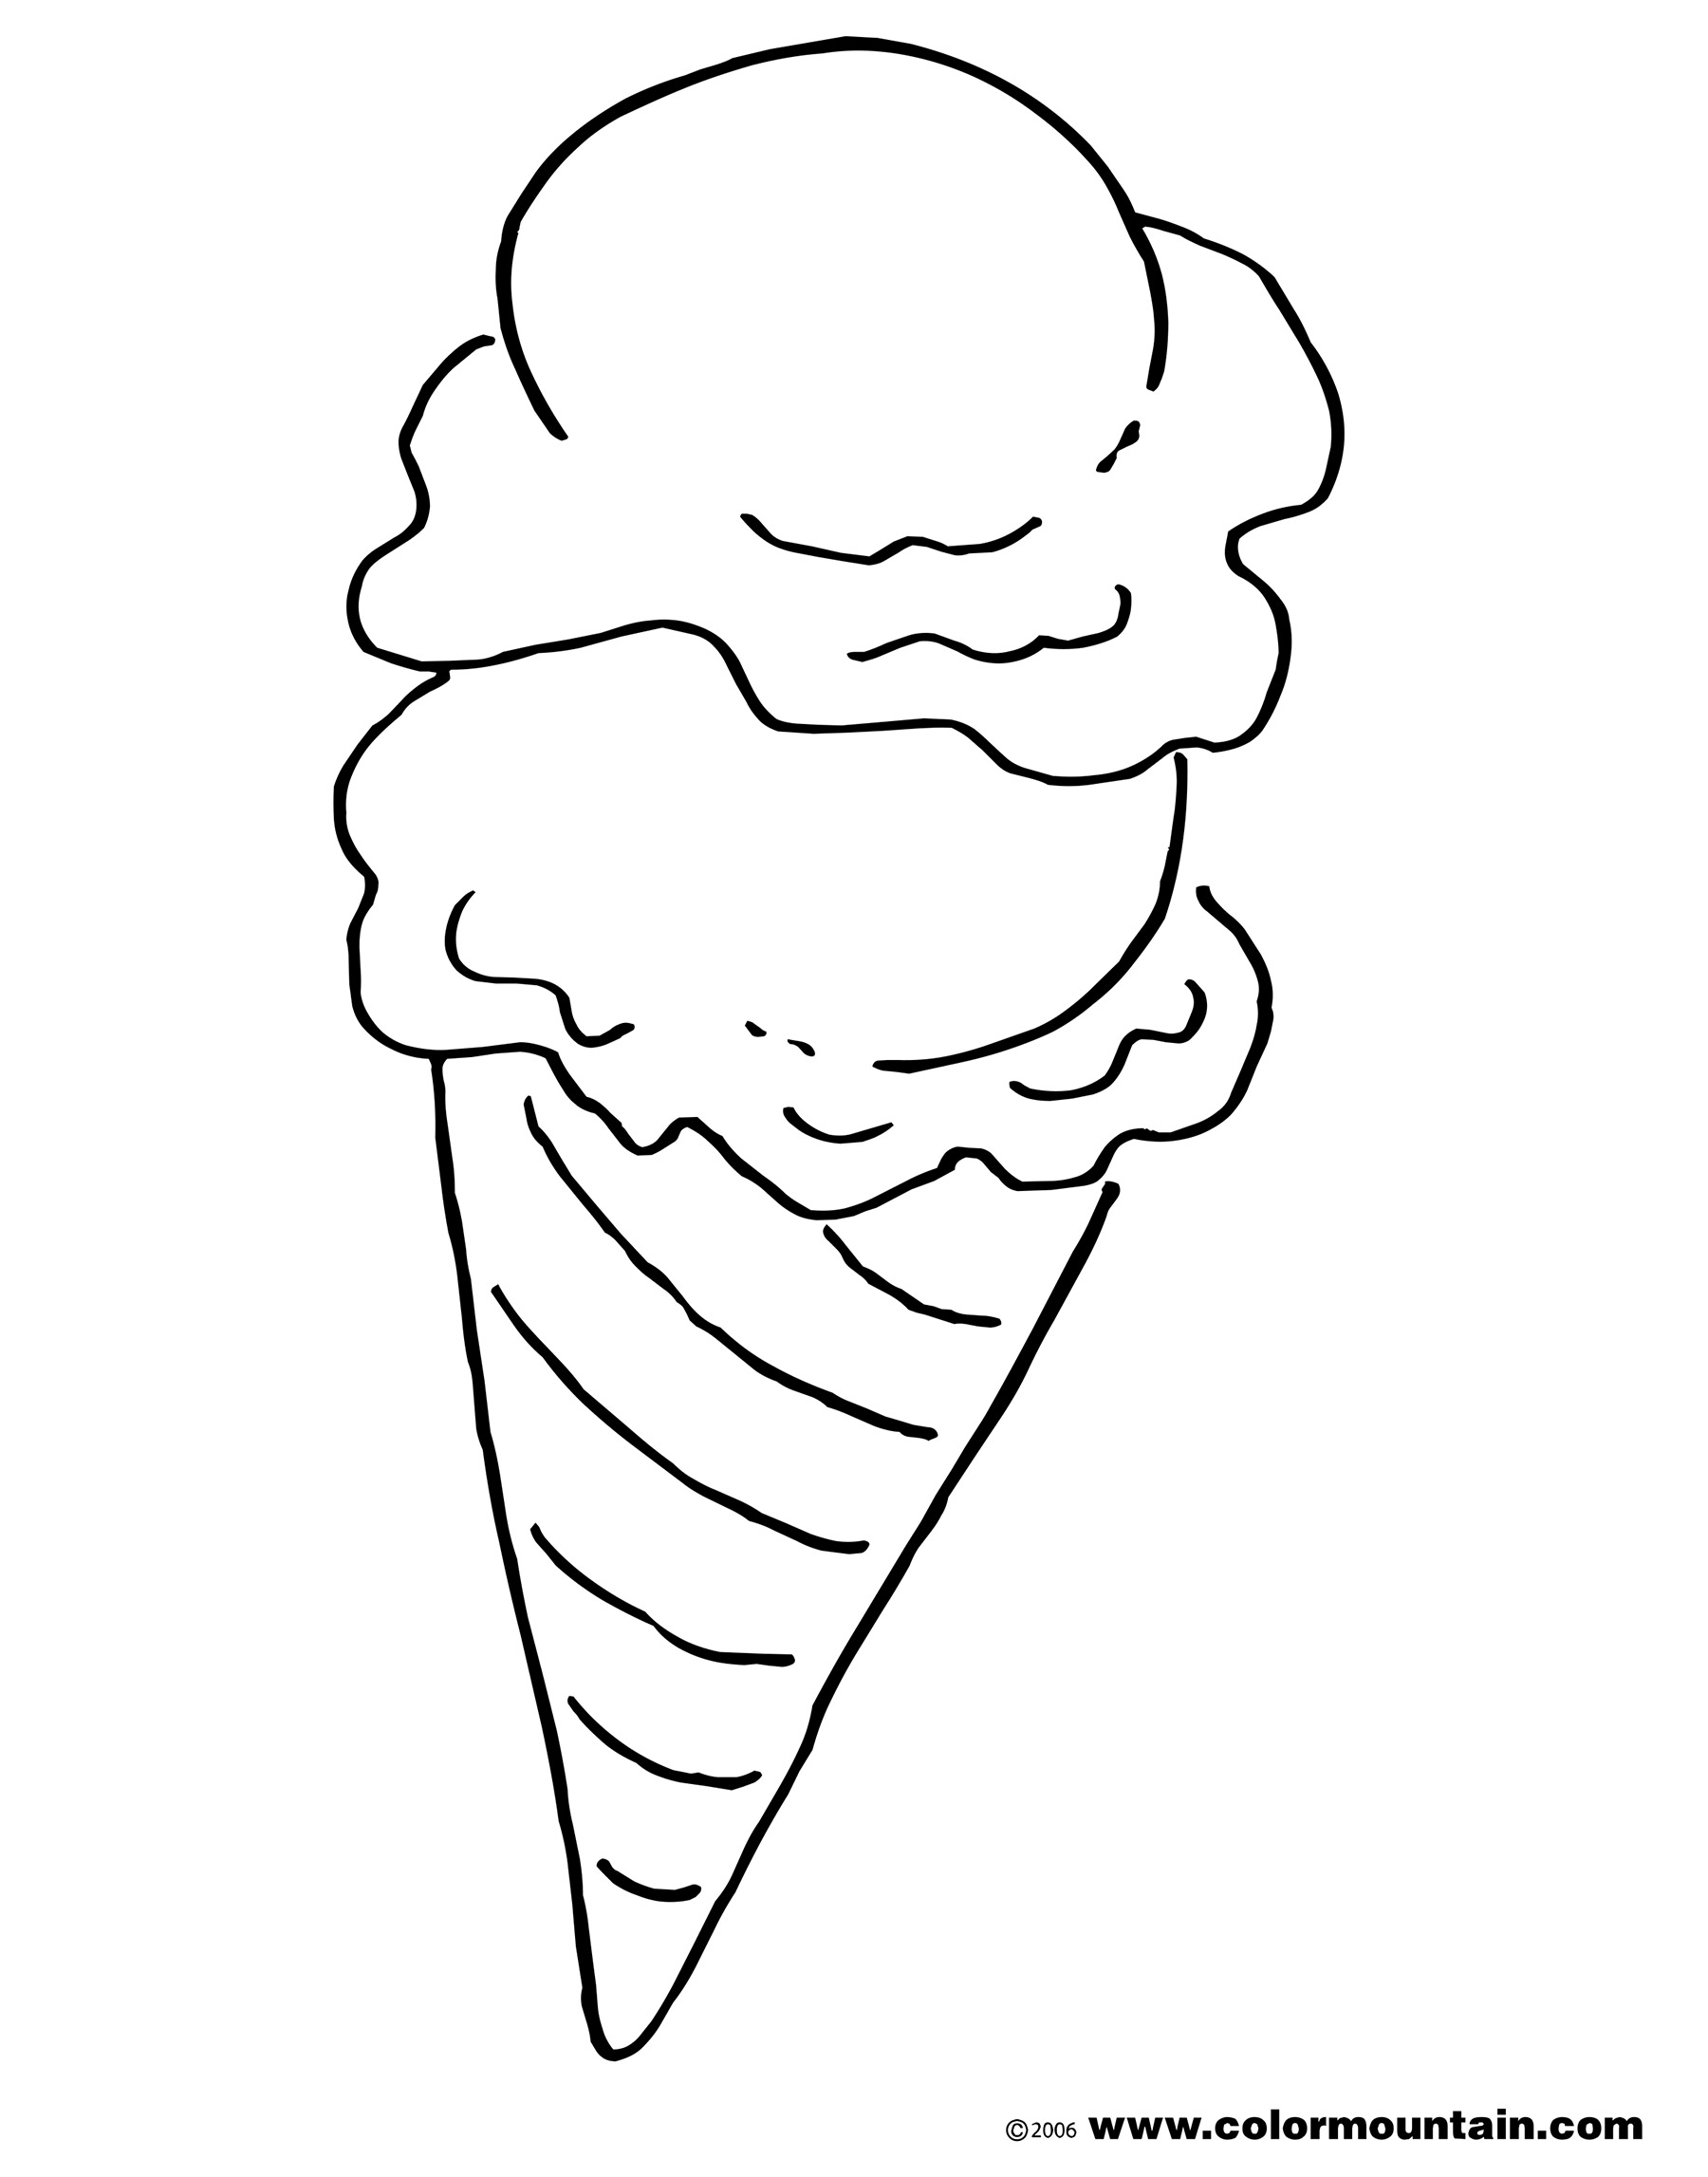 coloring page printable ice cream ice cream cone drawing at getdrawings free download printable coloring ice page cream